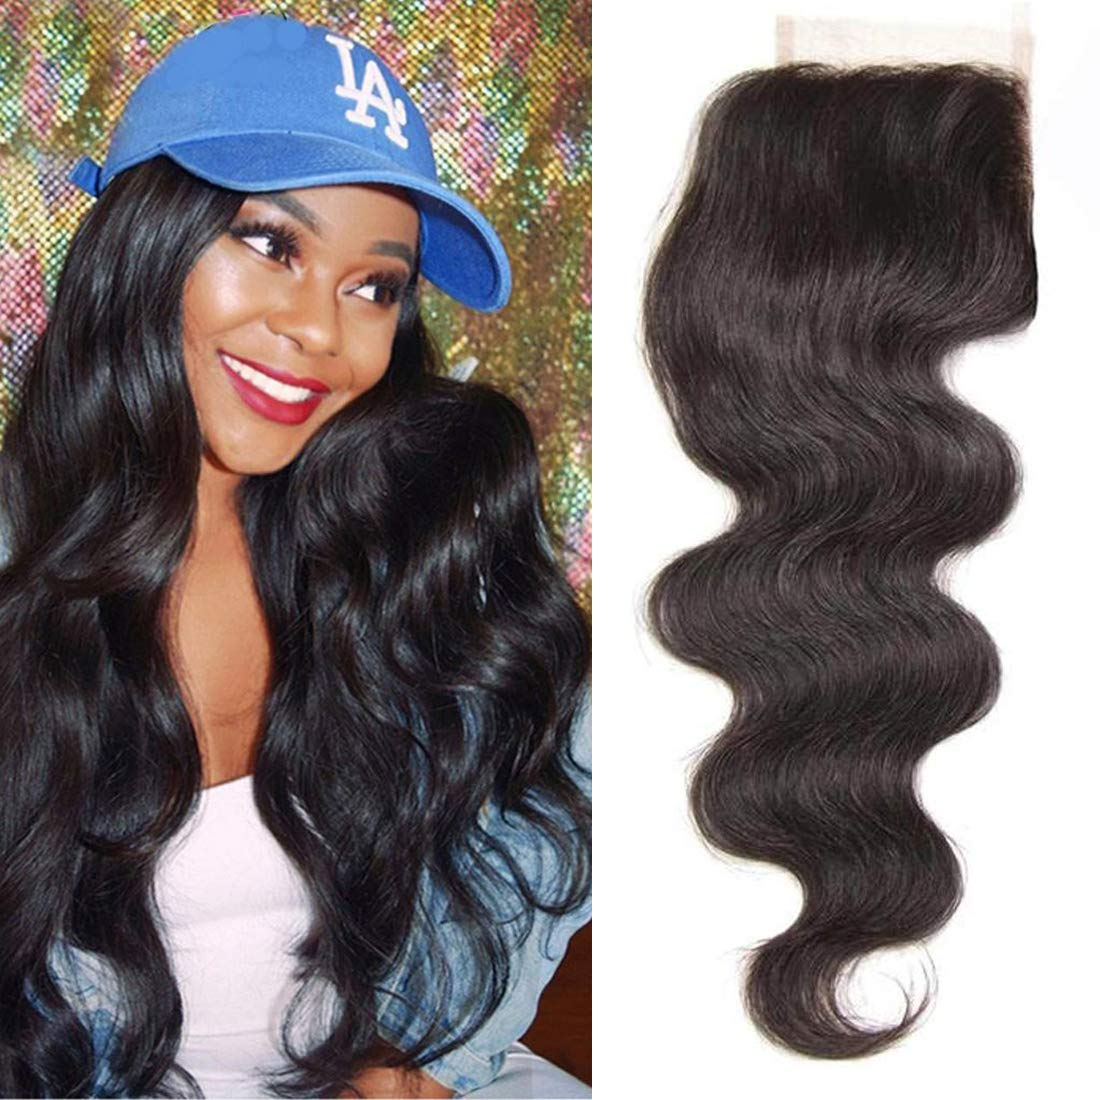 ALI JULIA Outlet SALENEW very popular! ☆ Free Shipping Body Wave Hair 6x6 Unprocessed 100% Closure Human Lace